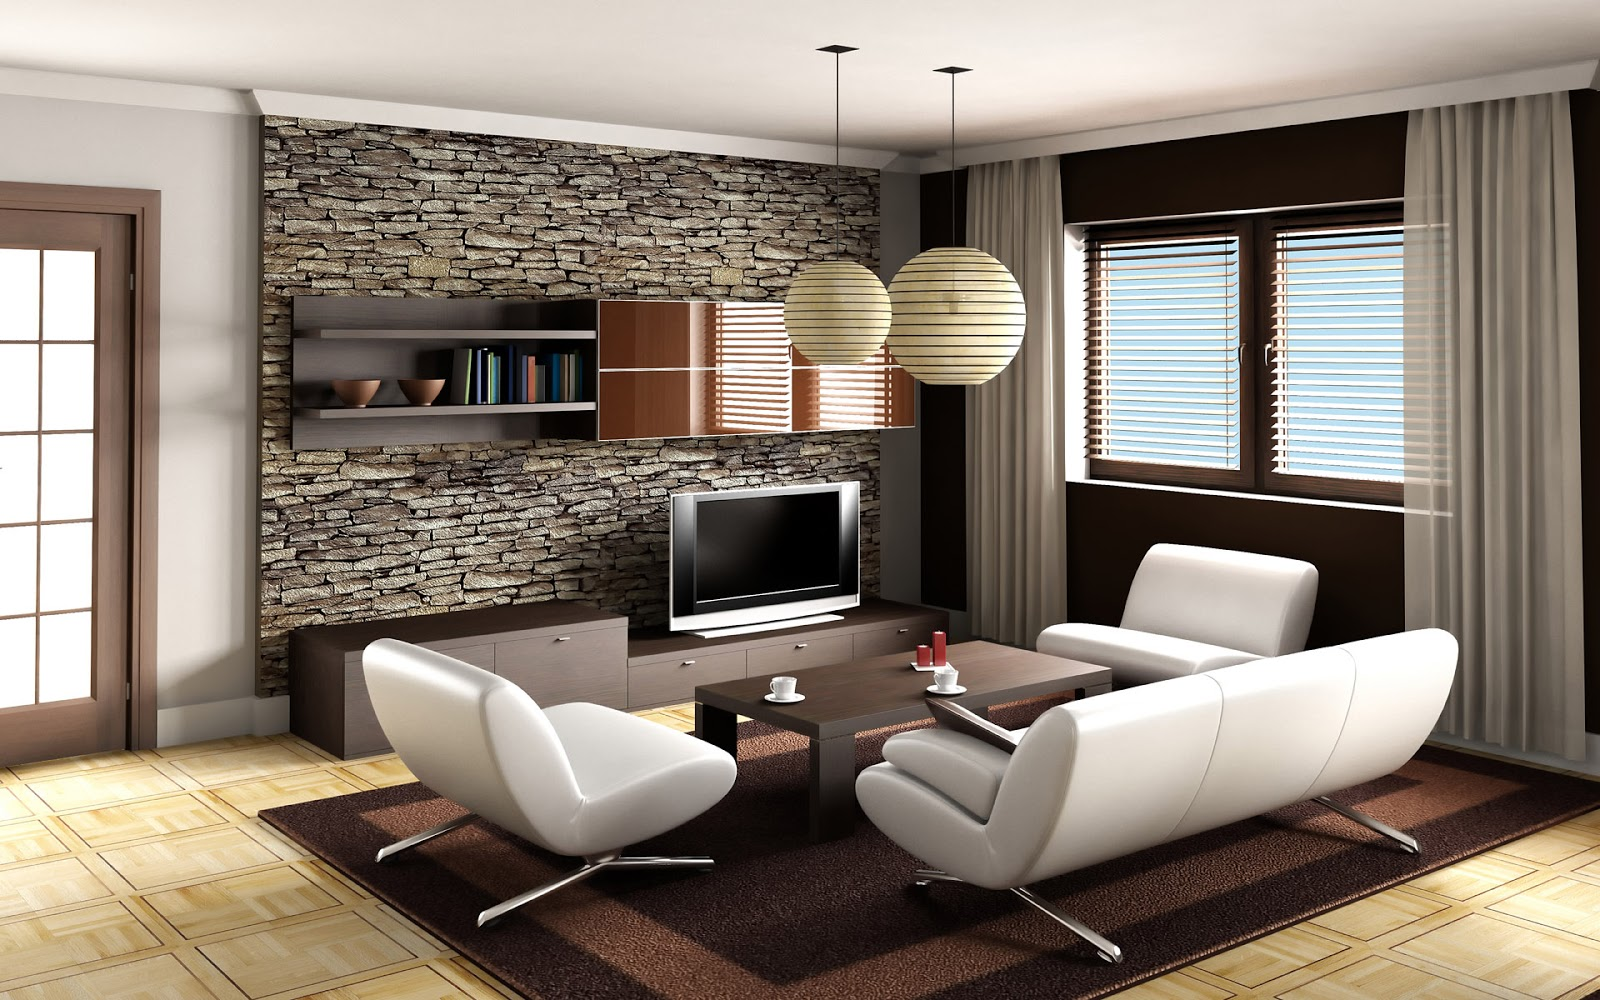 Arrangement of luxury living room ideas dream house for Modern interior design ideas living room